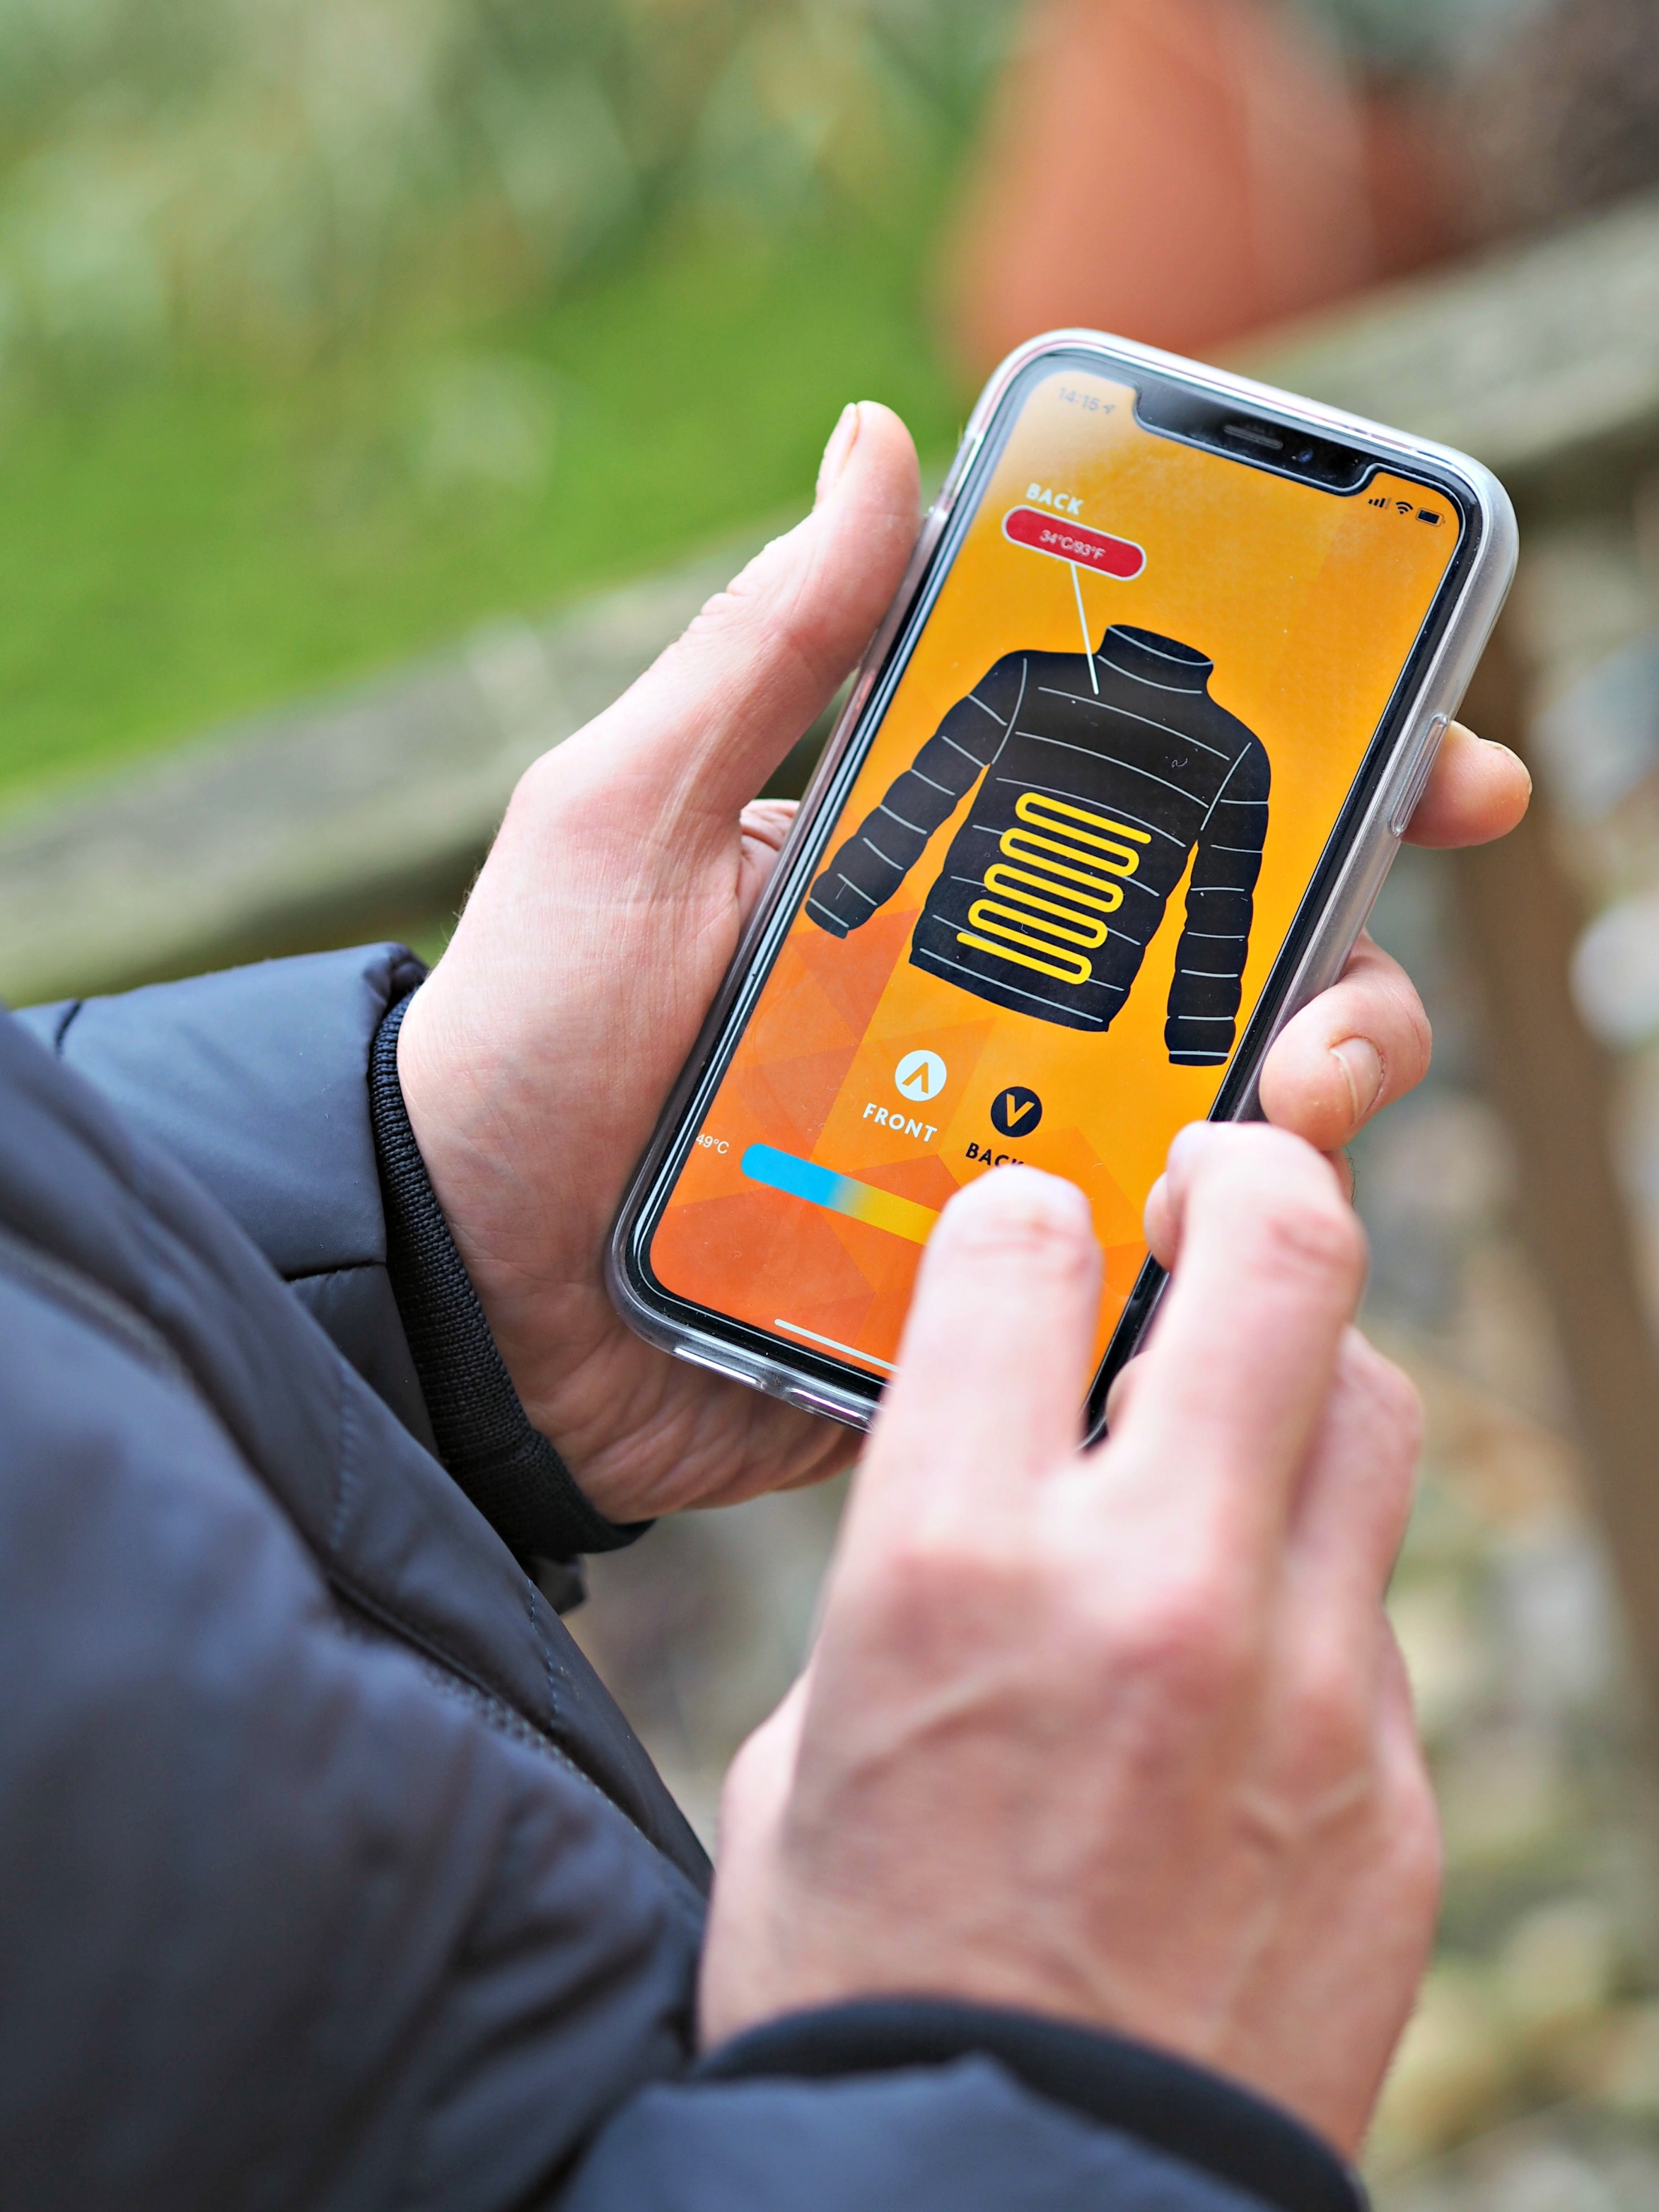 Flexwarm 8k Heated Jacket Review - using the app